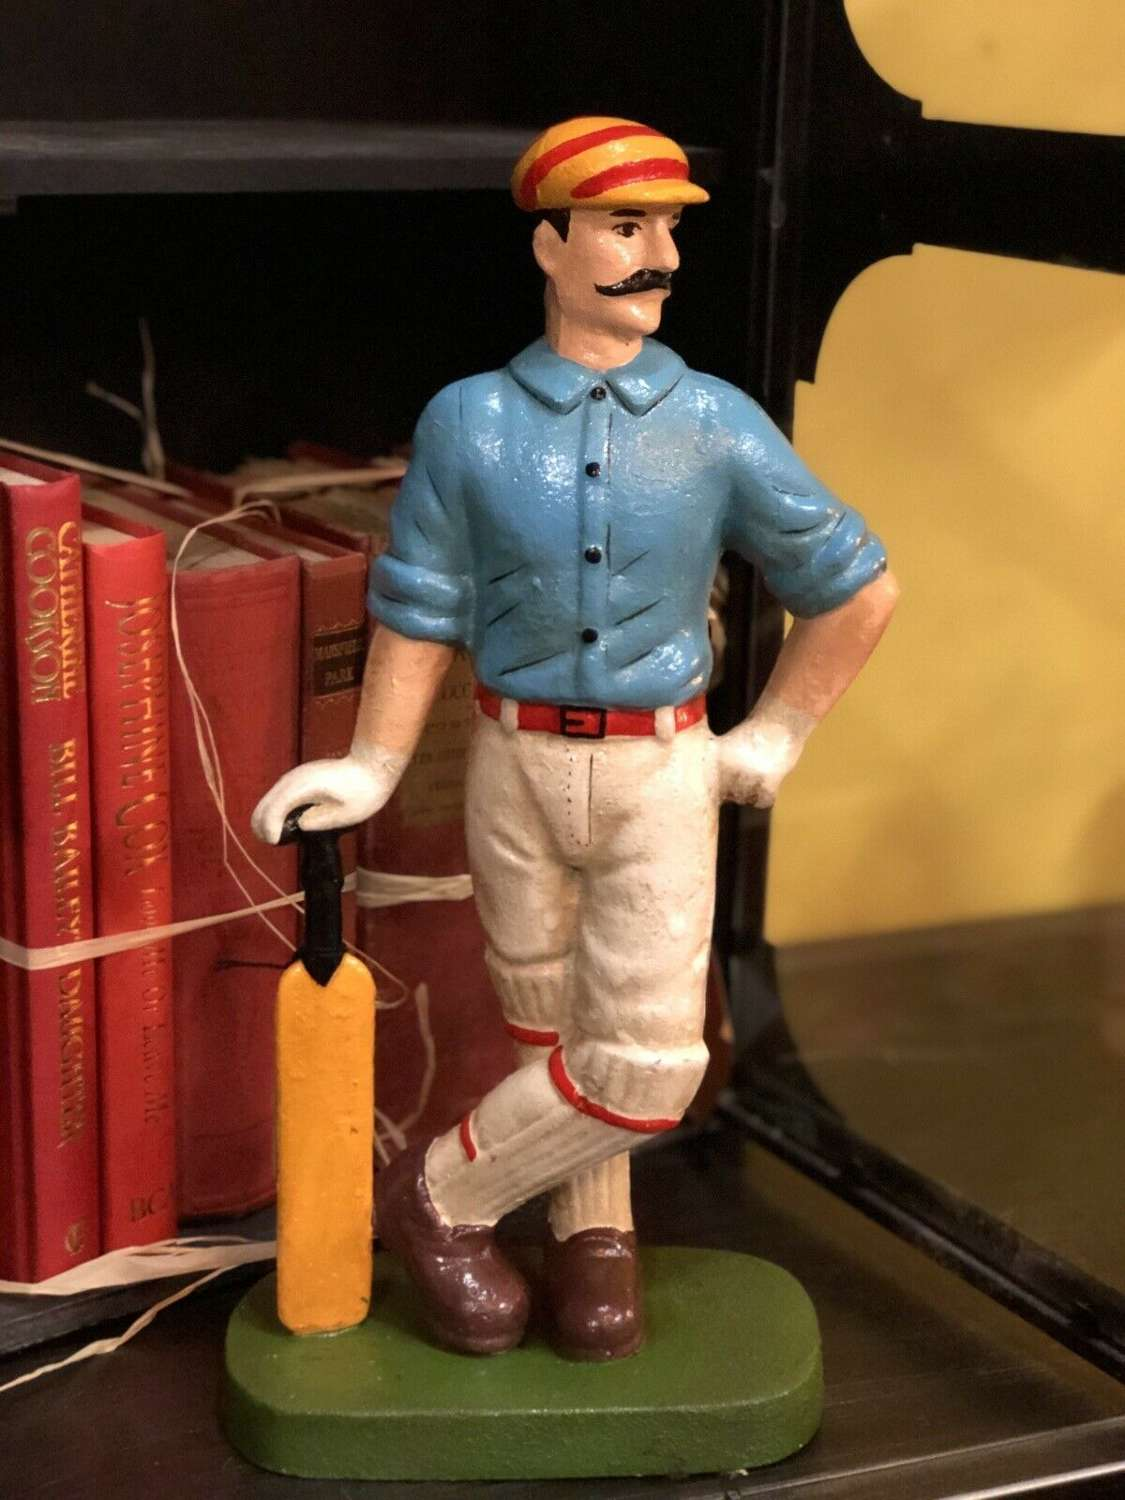 Cast Iron cricketer door stop